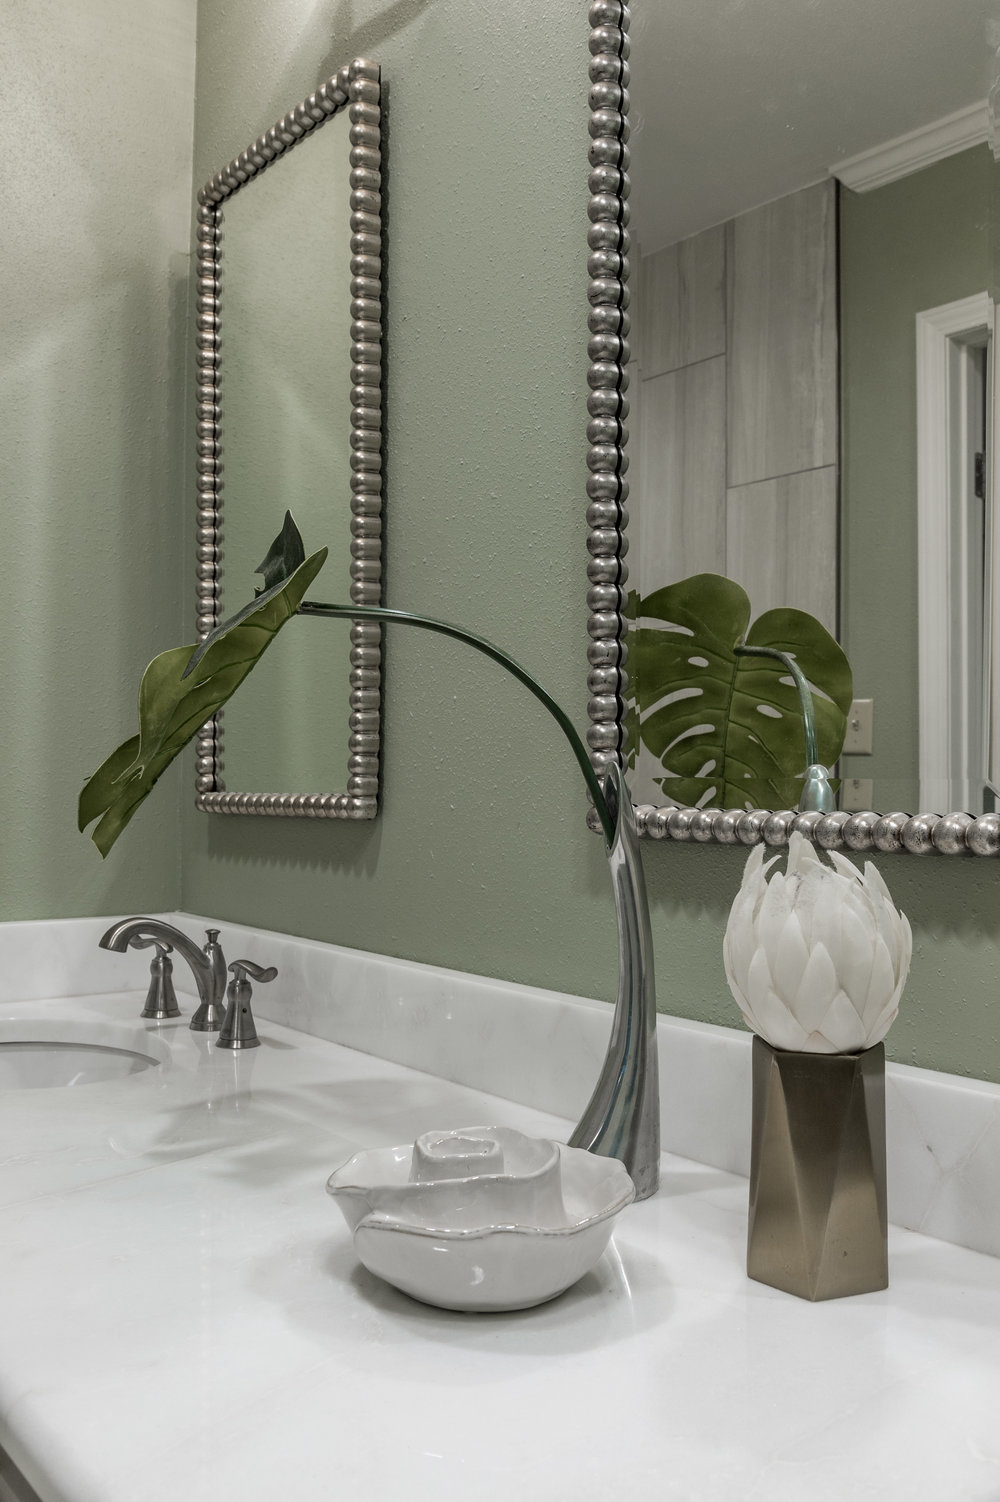 KHB Interiors details marble vanity pac uptown garden district new orleans interior decorator.jpg